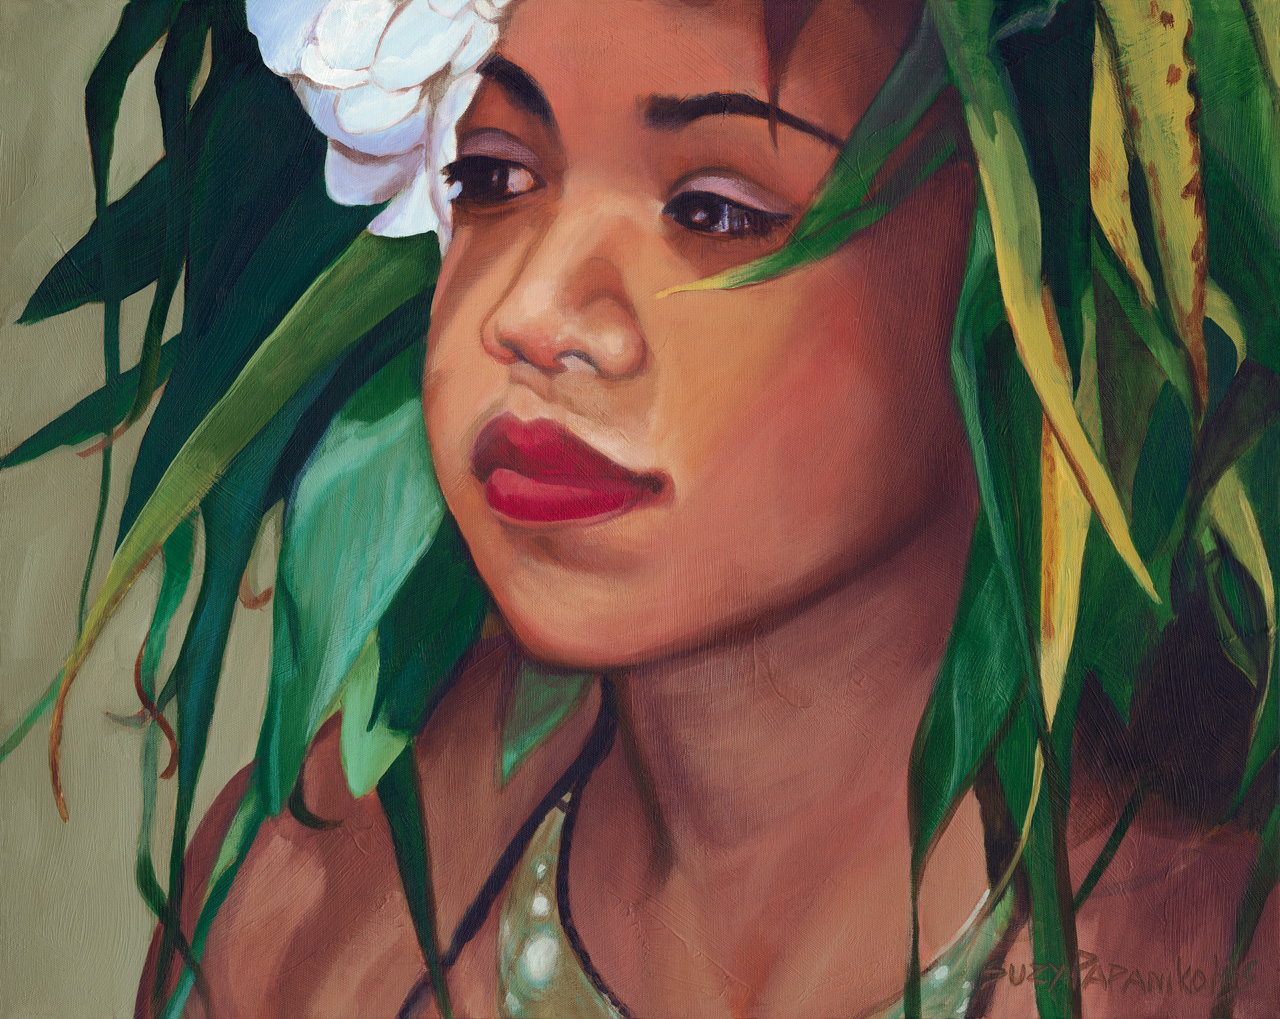 Portrait of a young hula girl with a ti leaf haku and white plumeria flowers in her ear